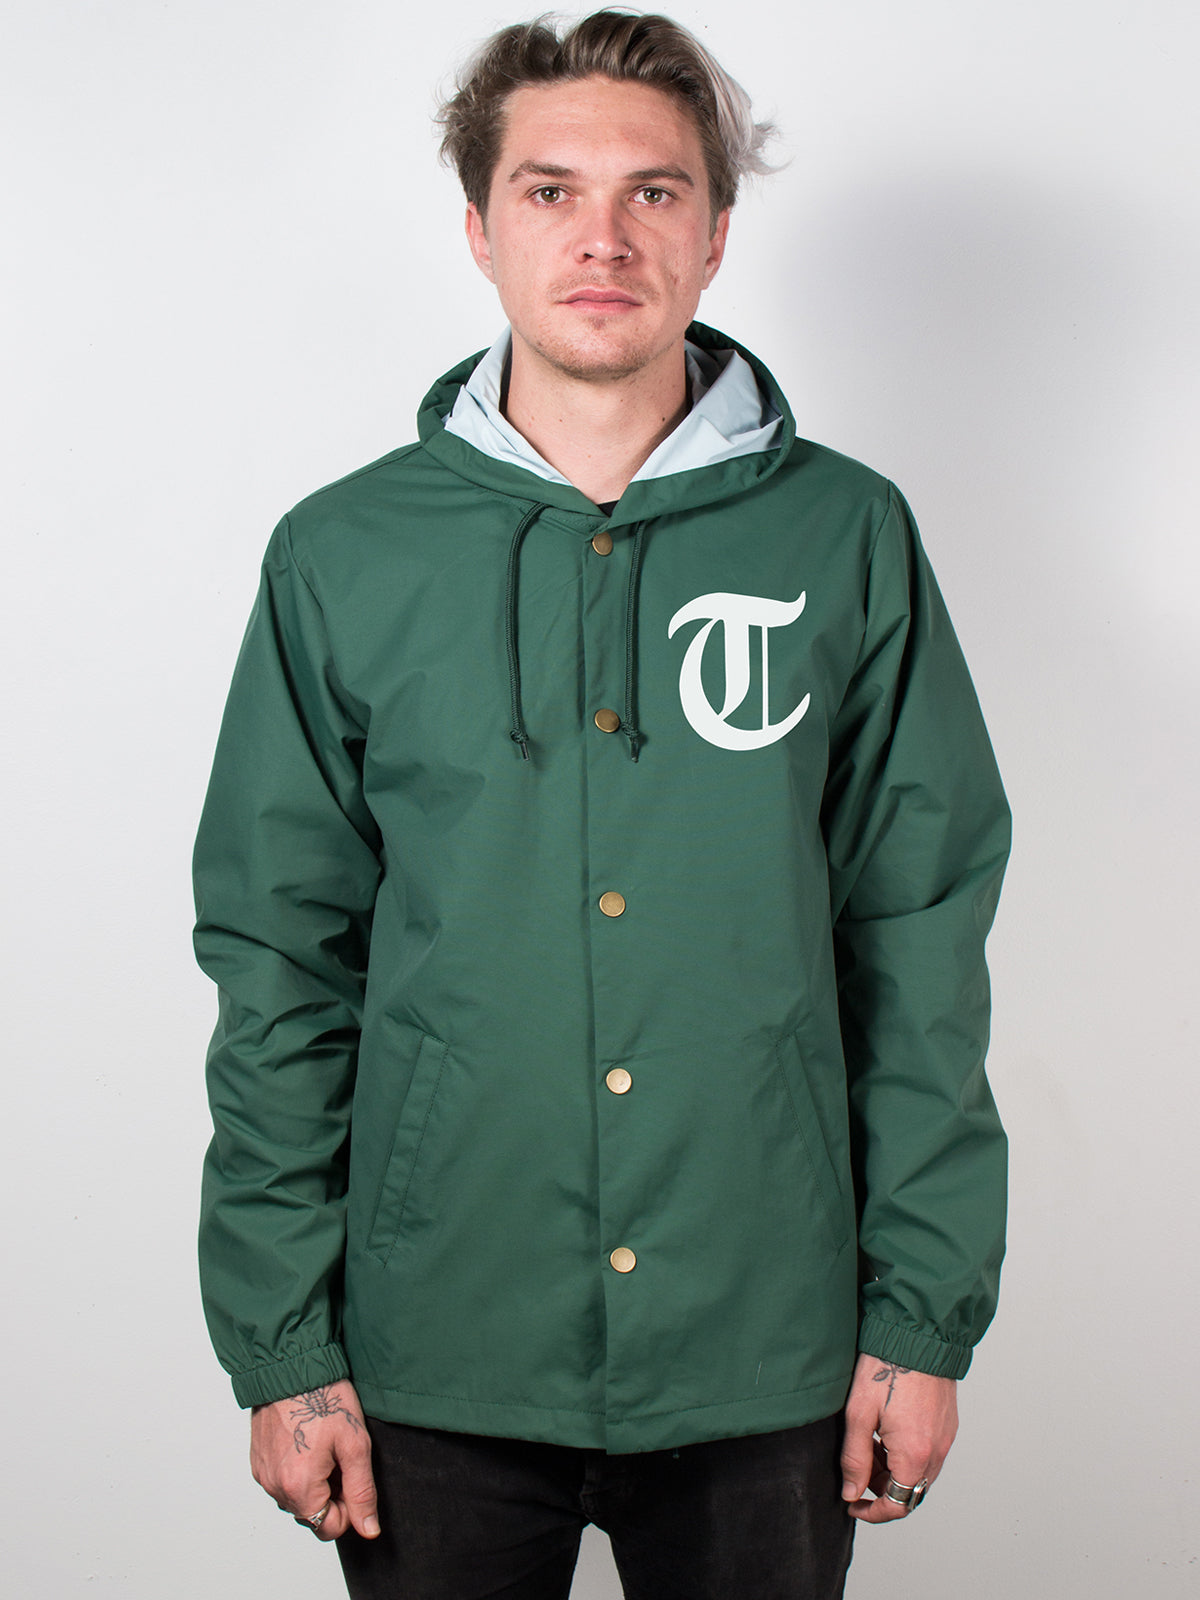 Terror - KOTF All Weather Jacket - Merch Limited